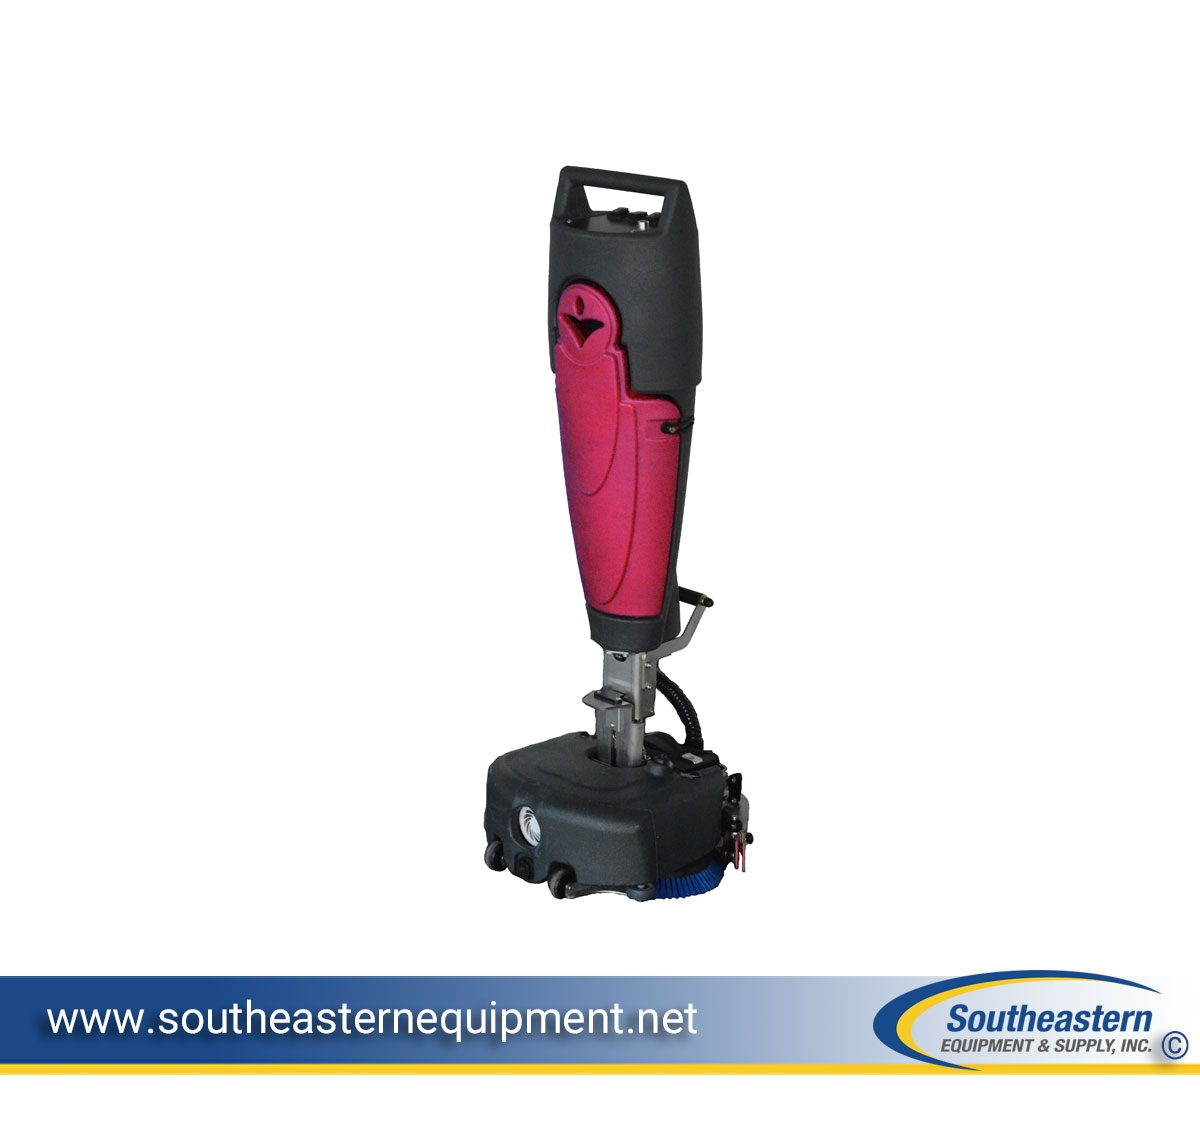 scrubber online zoom floors hover shop minuteman inch enlarge rider tennant detail click to floor